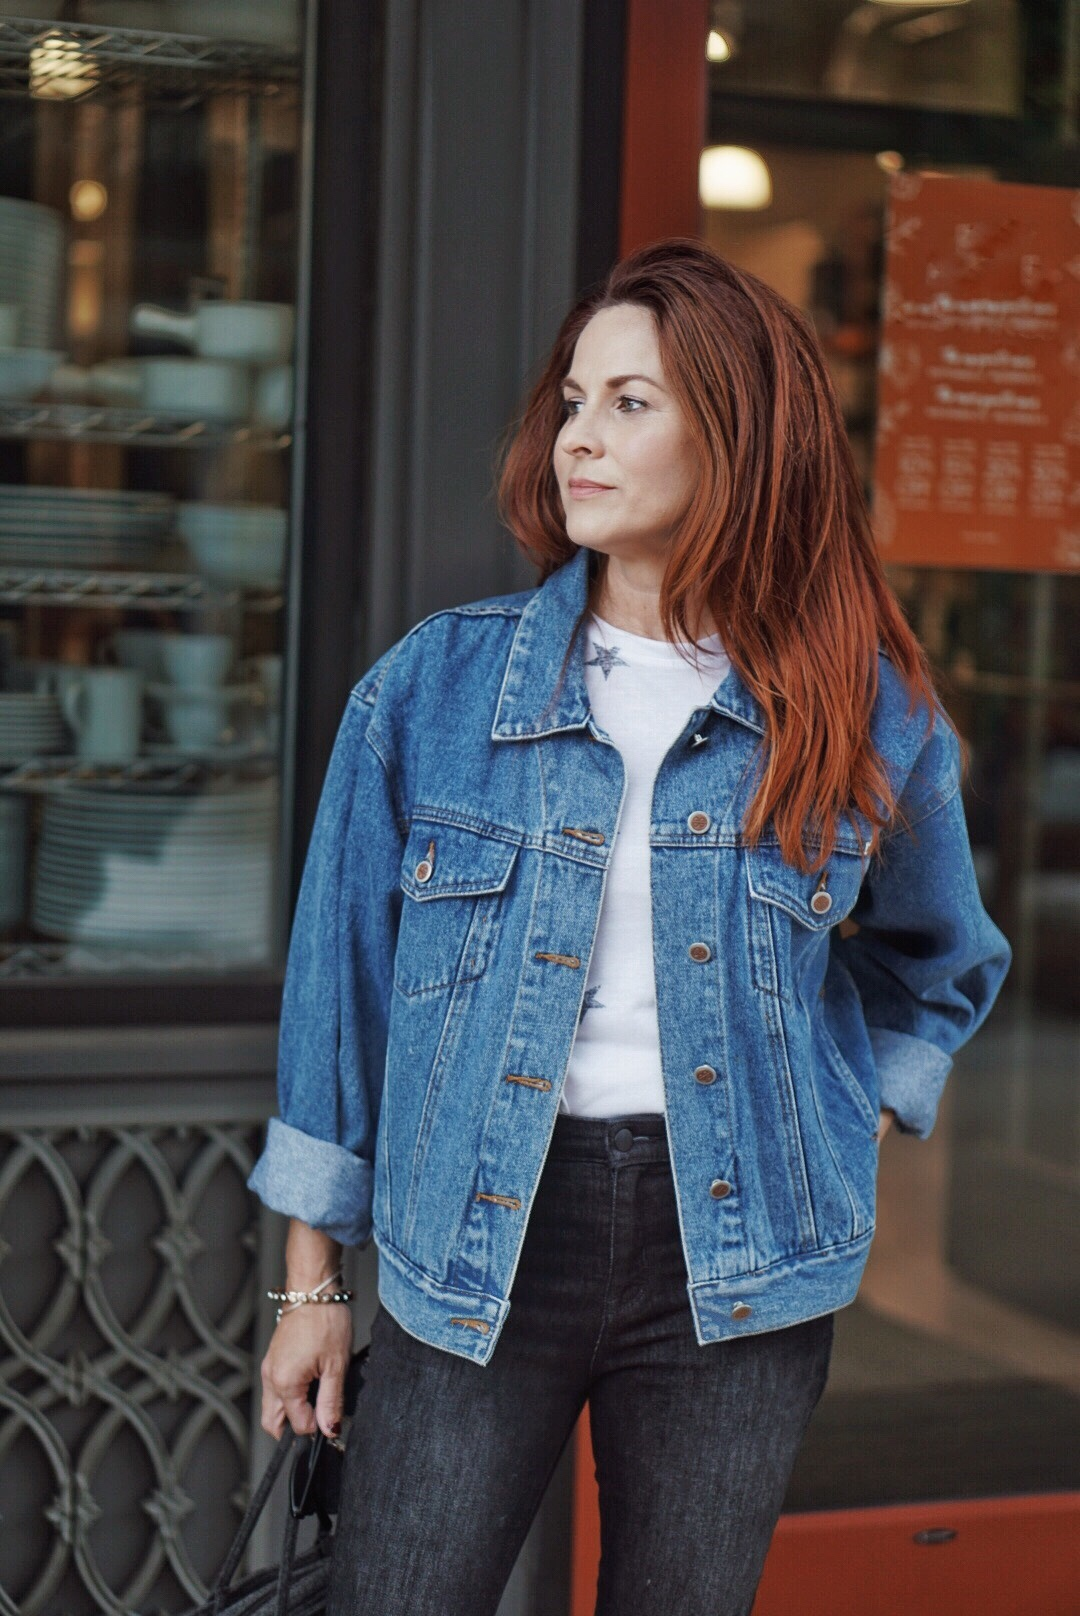 casual outfit ideas, blue jean jacket outfits, how to style denim with denim